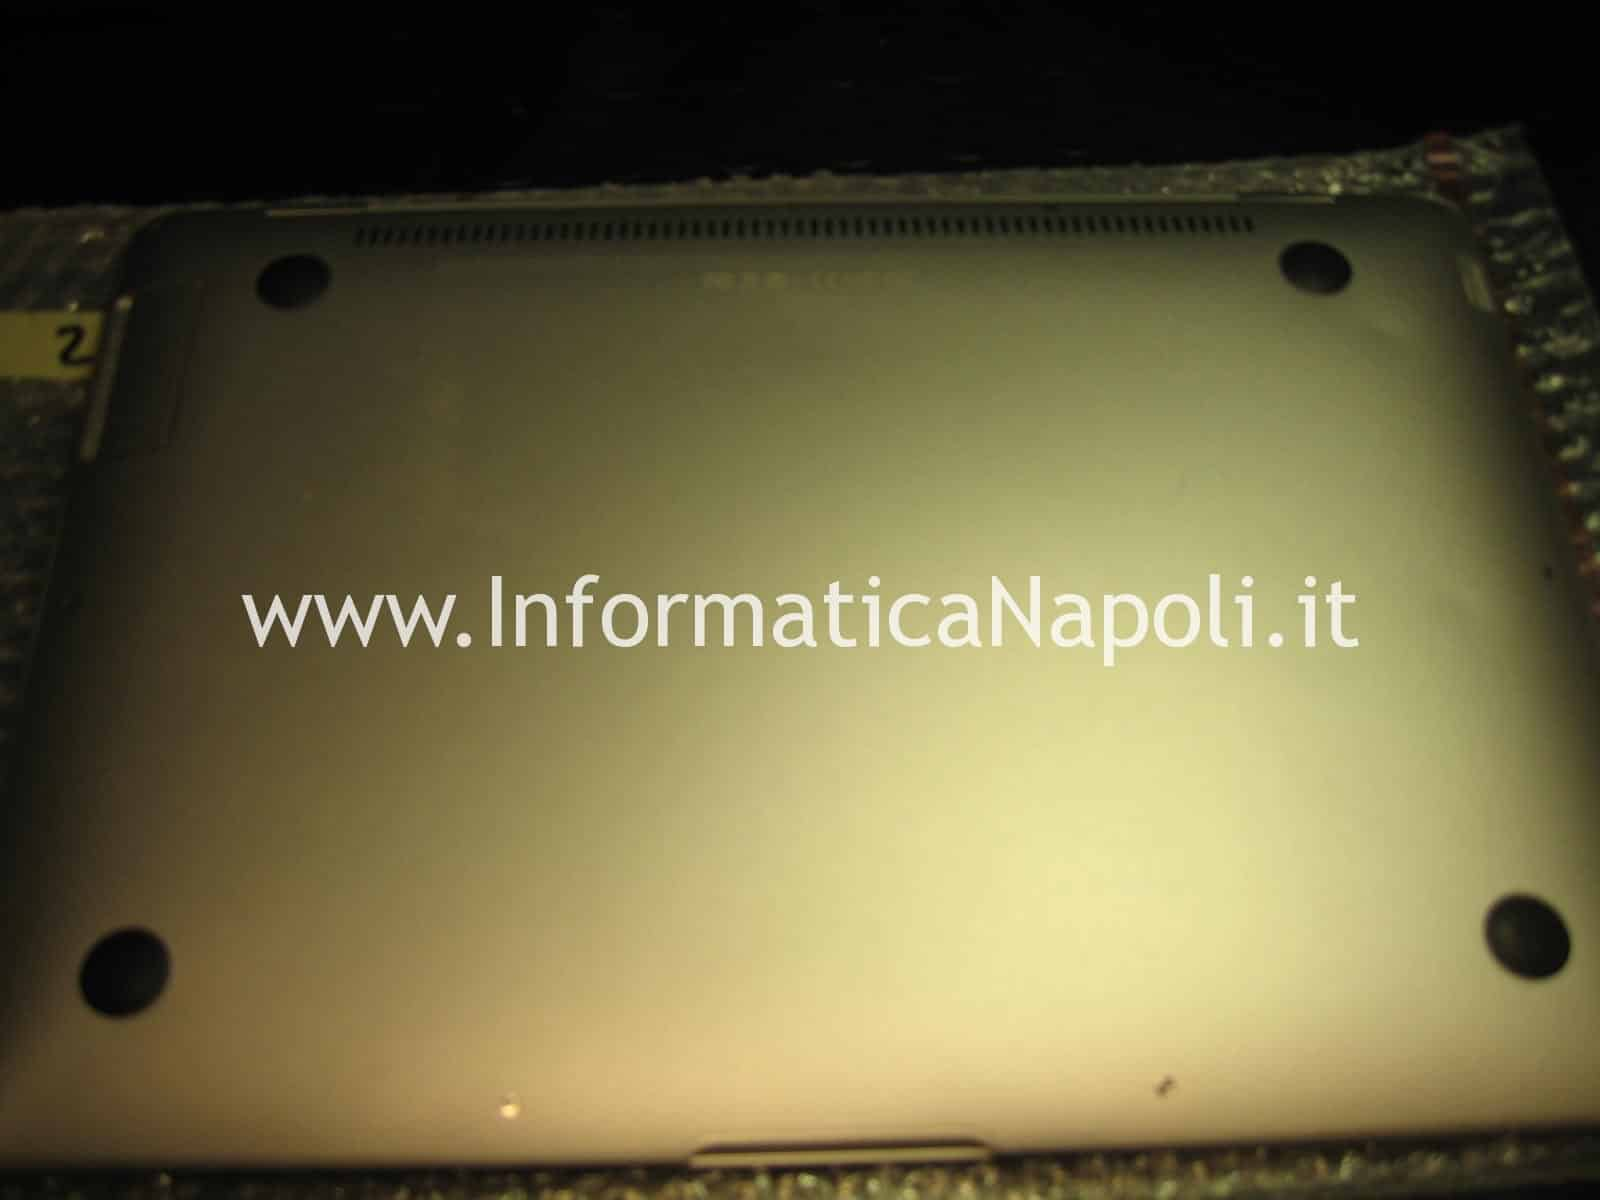 beep macbook air 13 A1237